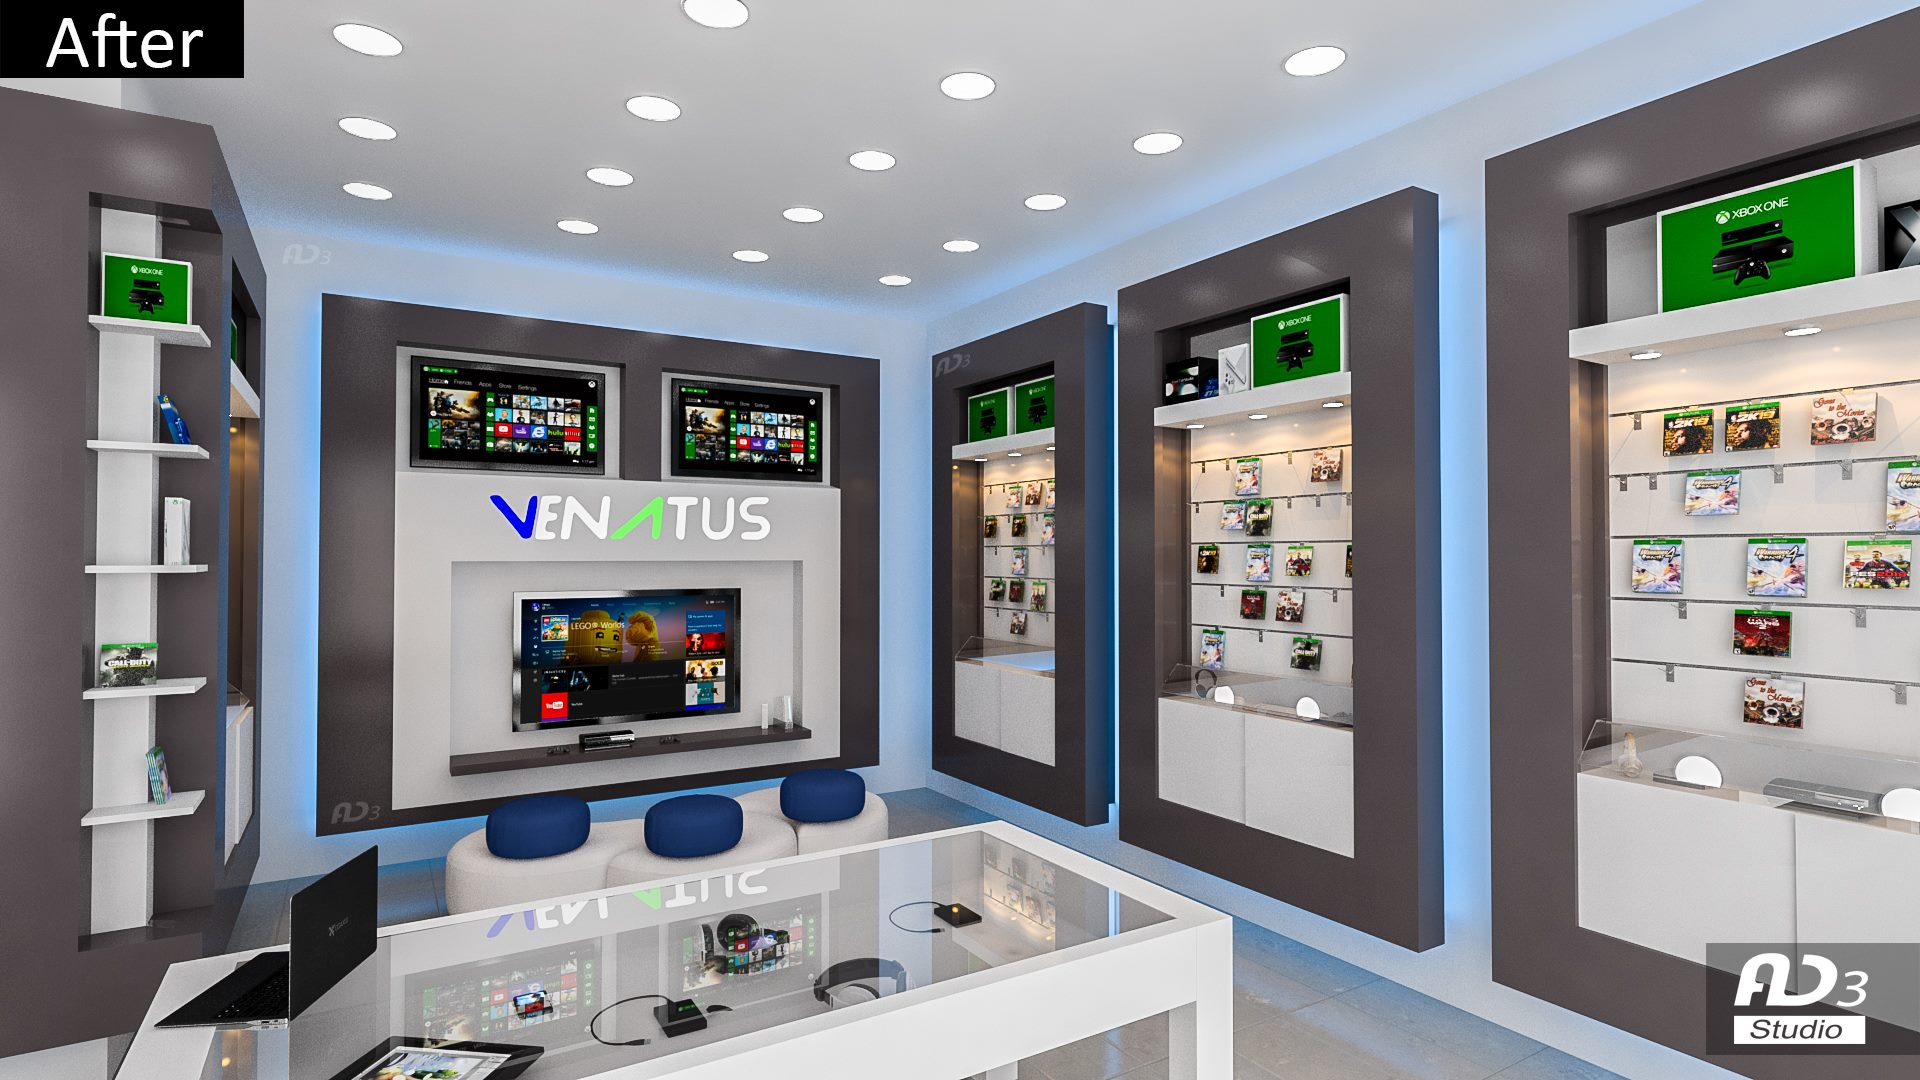 Venatus Gaming center